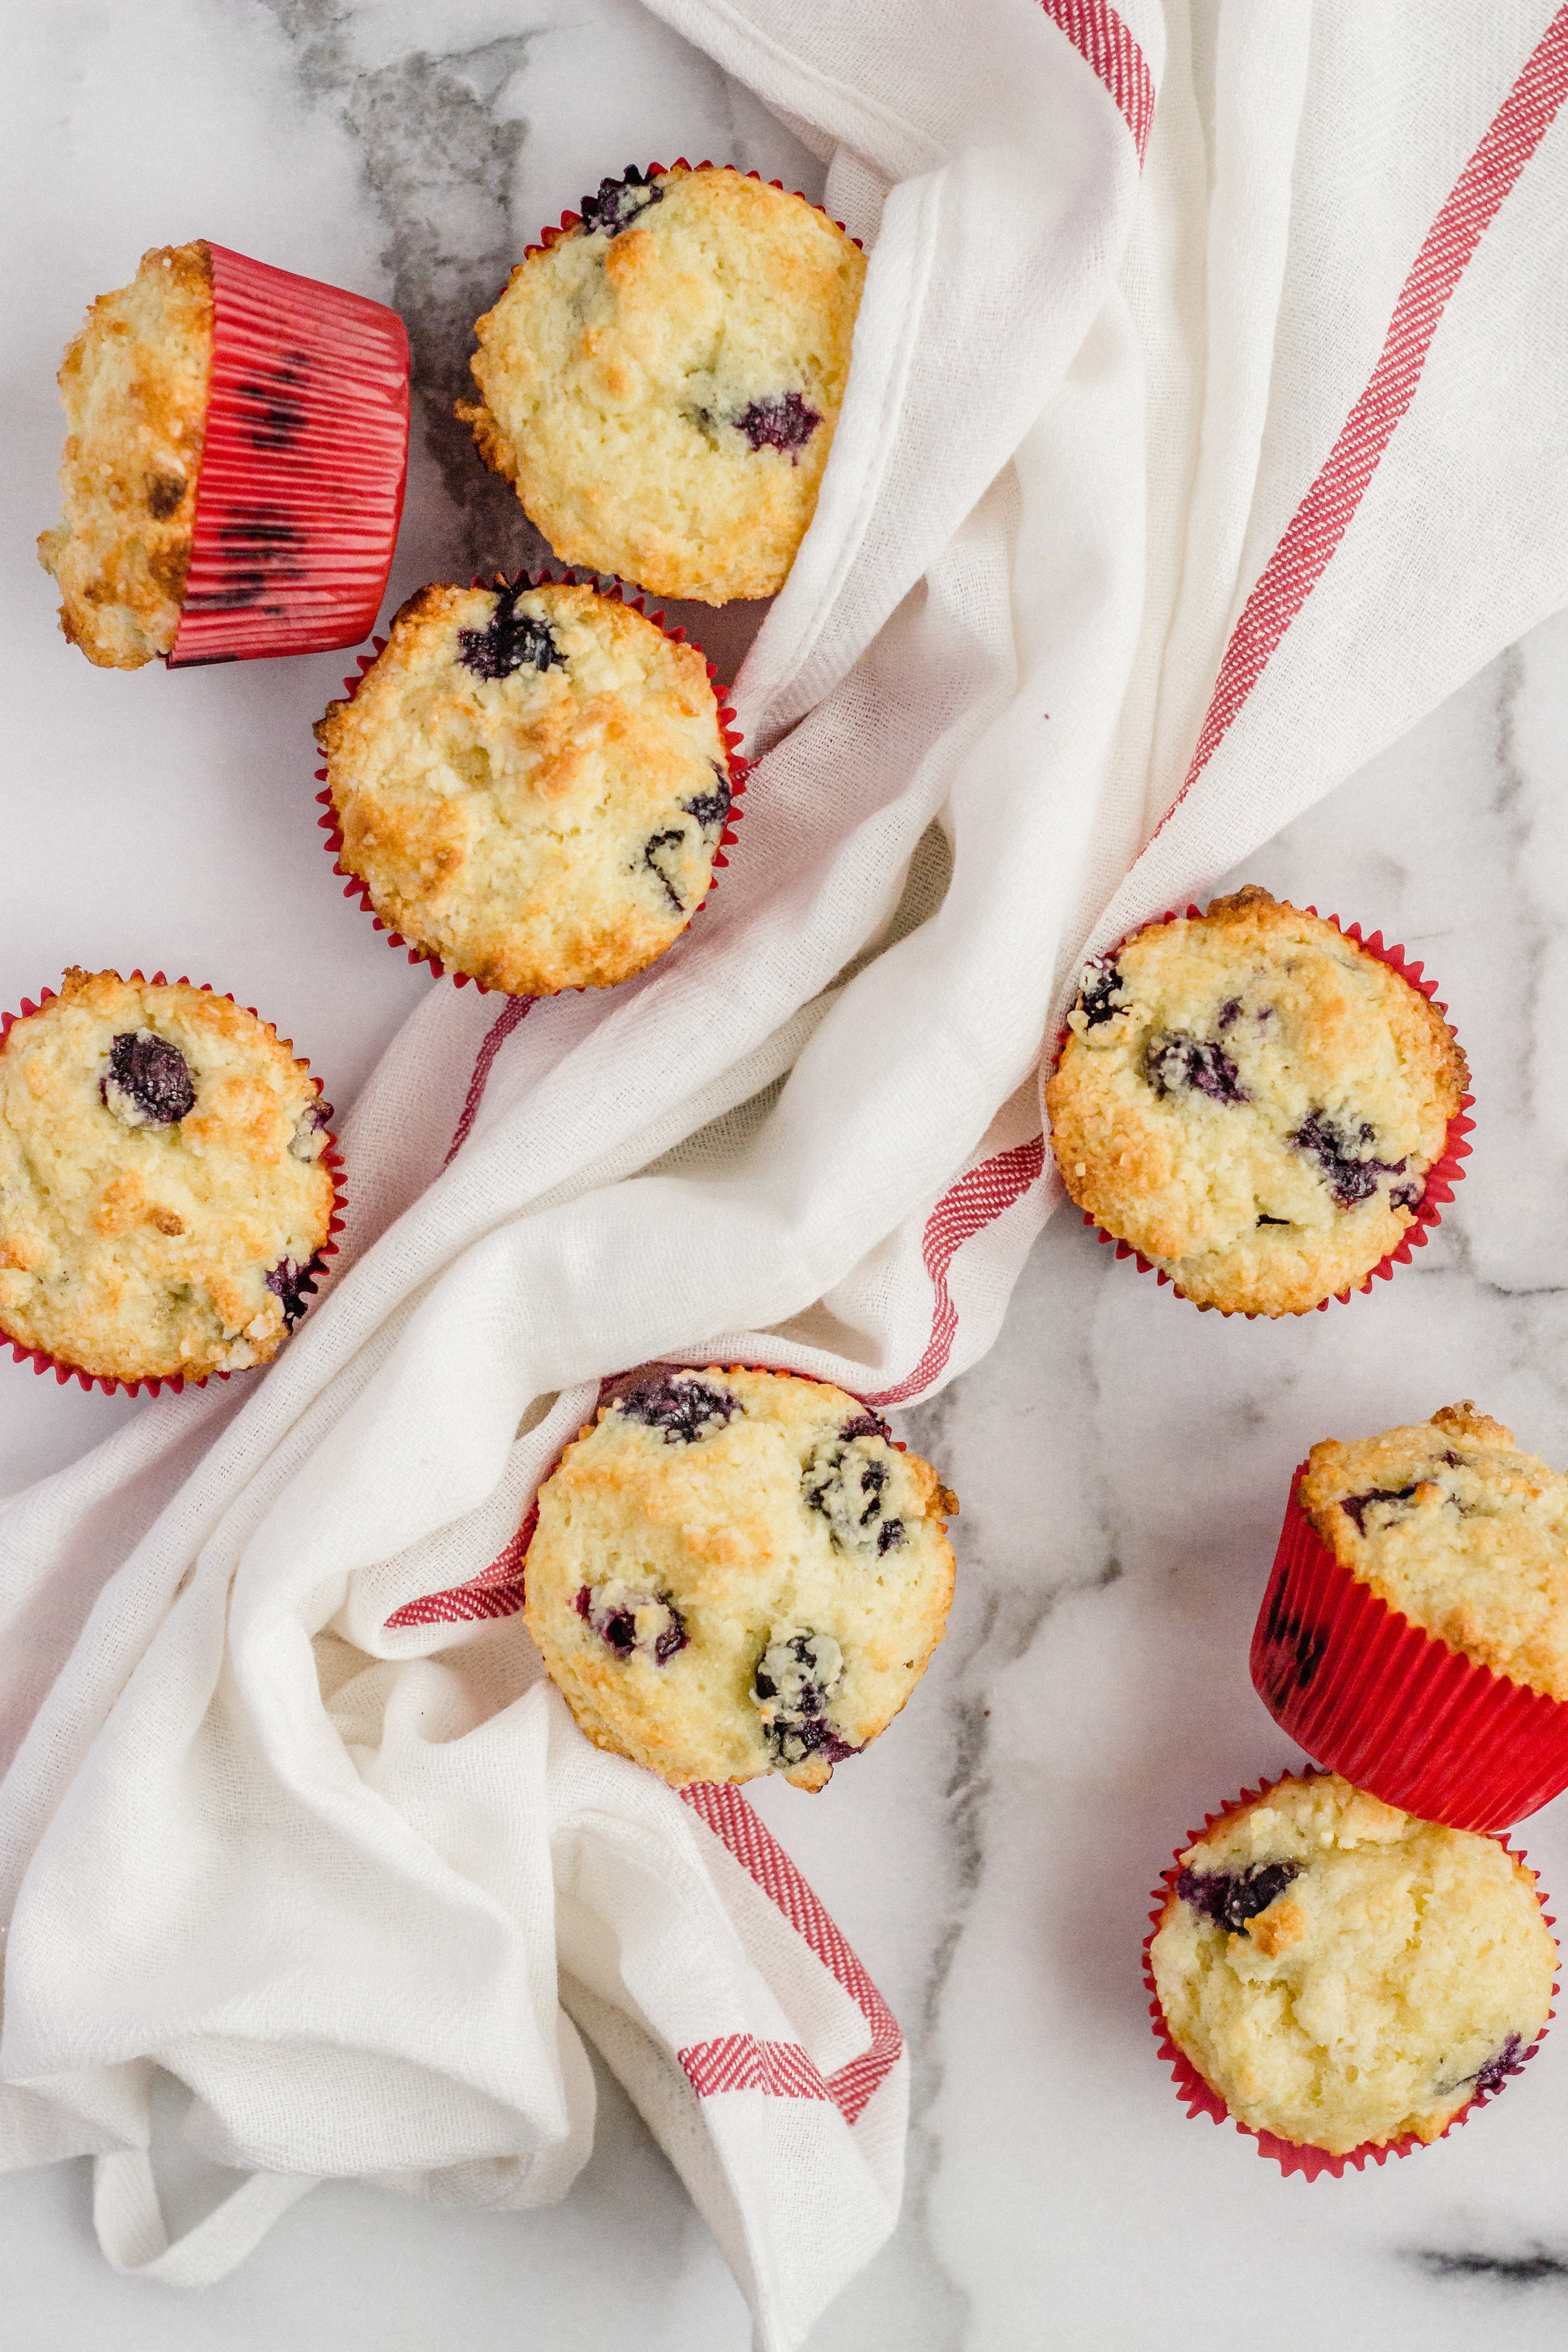 lemon_blueberry_muffins-2.jpg